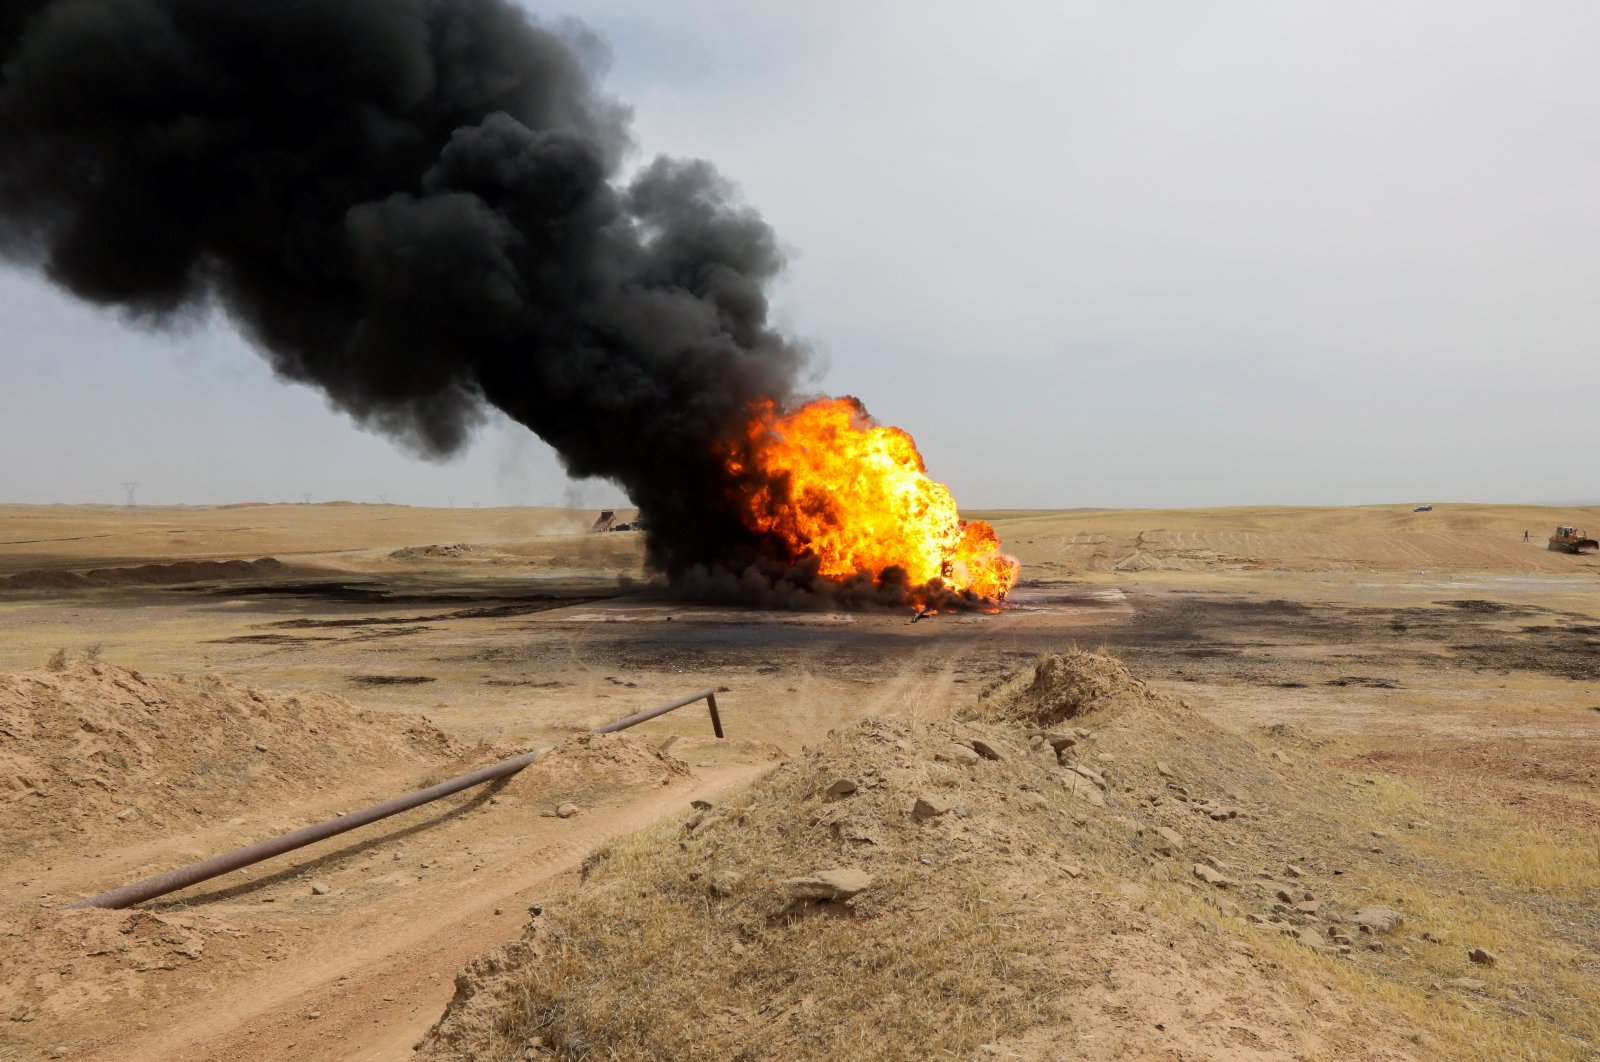 Flames and smoke rise from oil wells inside the Bai Hassan oil field, which was attacked by militants, close to the northern Iraqi city of Kirkuk, Iraq, May 5, 2021. (REUTERS Photo)